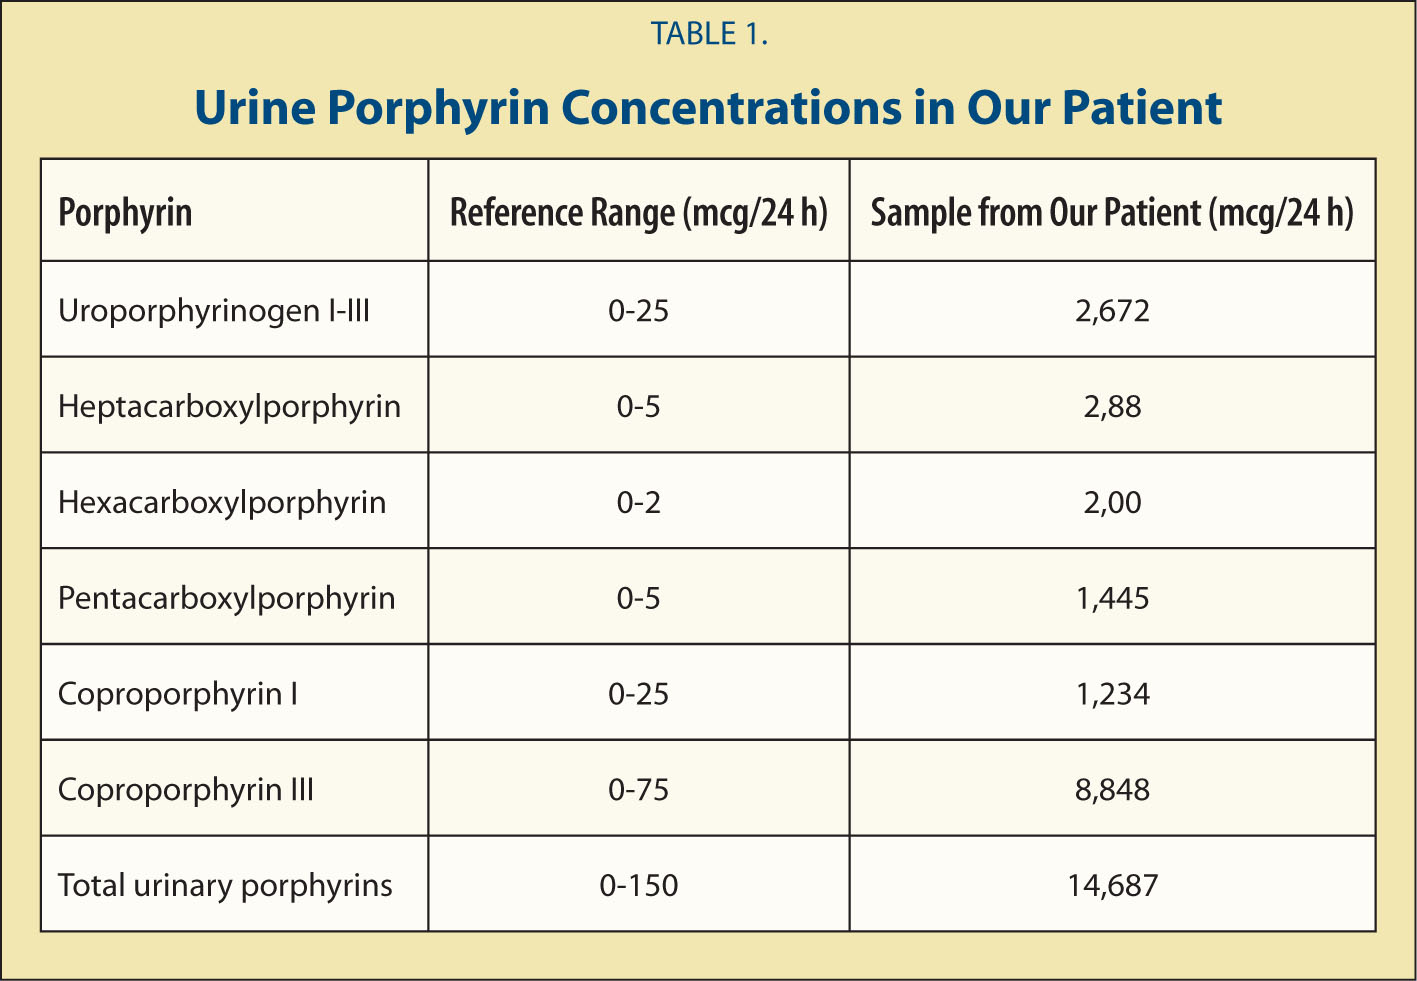 Urine Porphyrin Concentrations in Our Patient